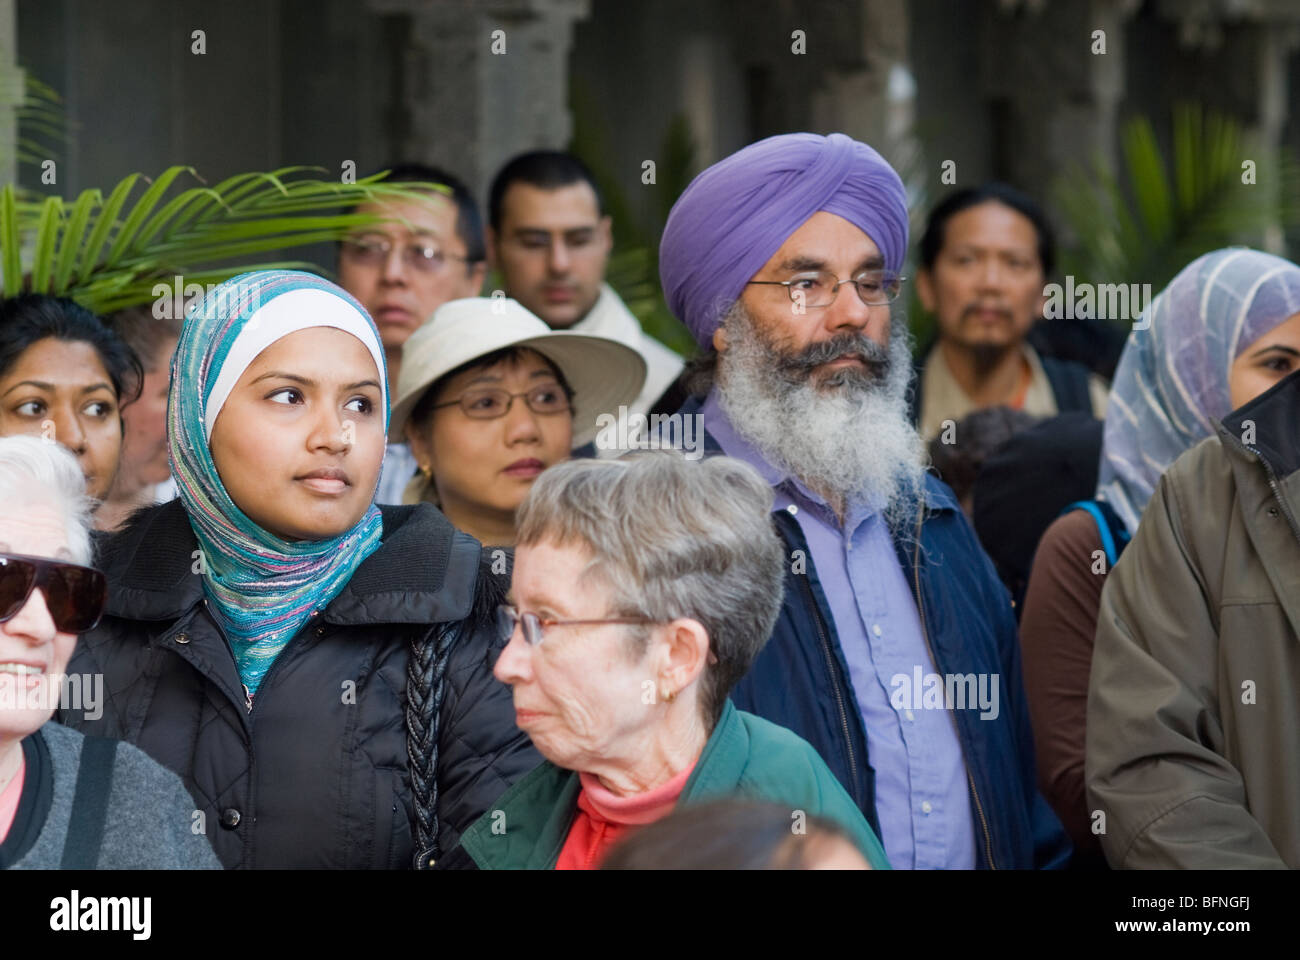 Members of religious congregations in Flushing, Queens stop at the Hindu Temple Center during the Queens Interfaith - Stock Image